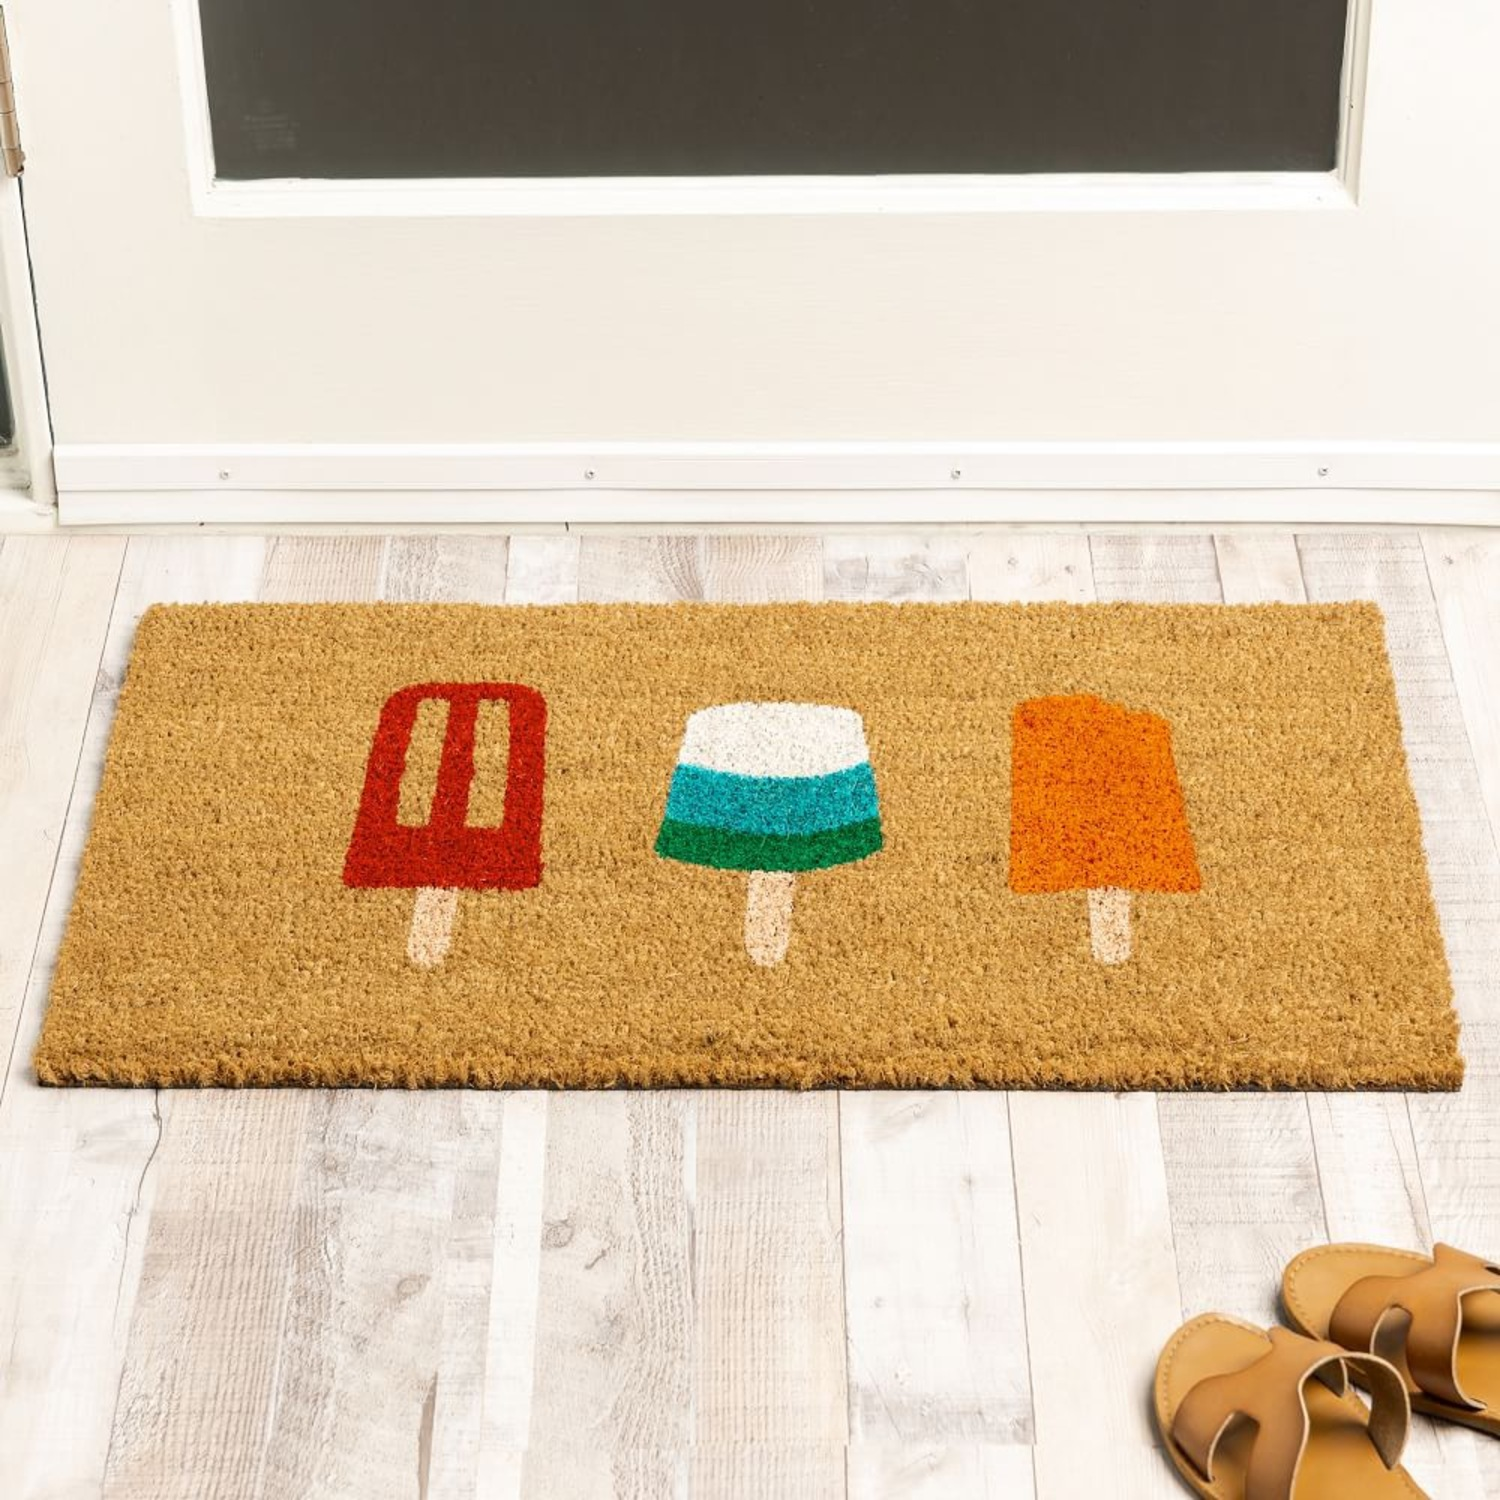 Hand-Painted Popsicle Doormat - image-1